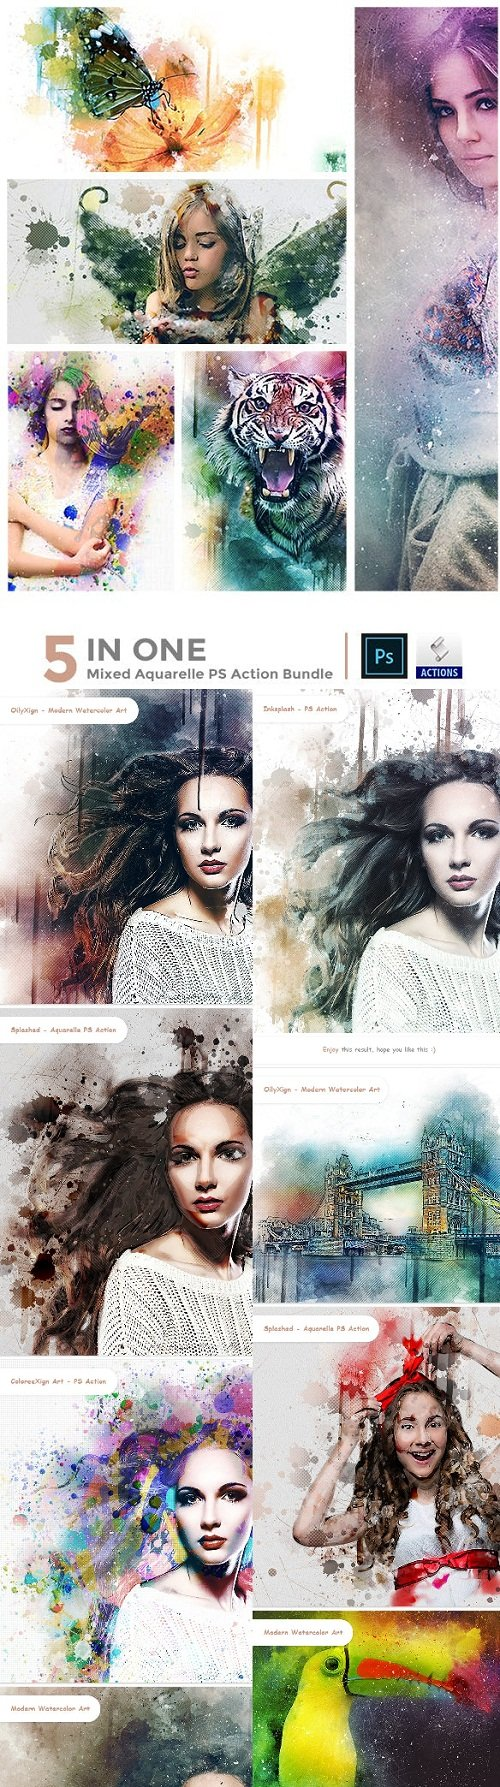 5 in One Mixed Aquarelle PS Action Bundle - 23066719